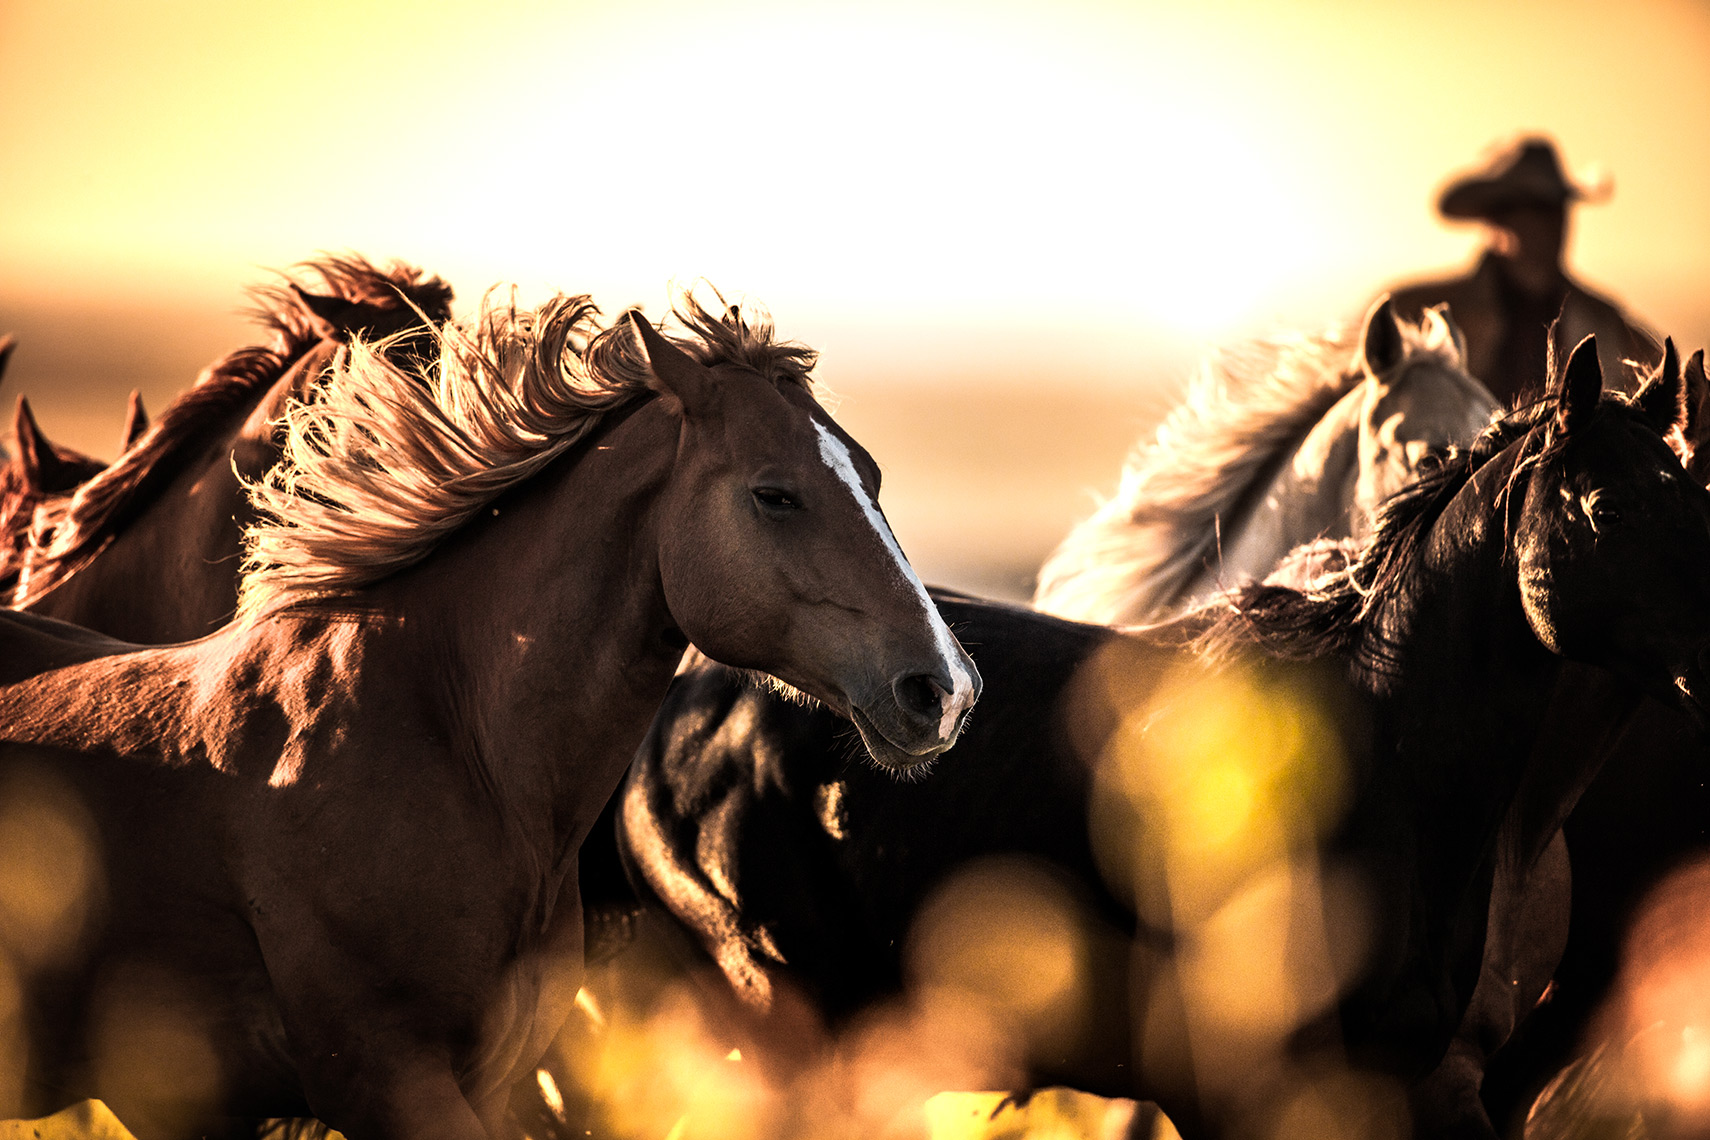 American Midwest Photography: Horse riding in the sunset.